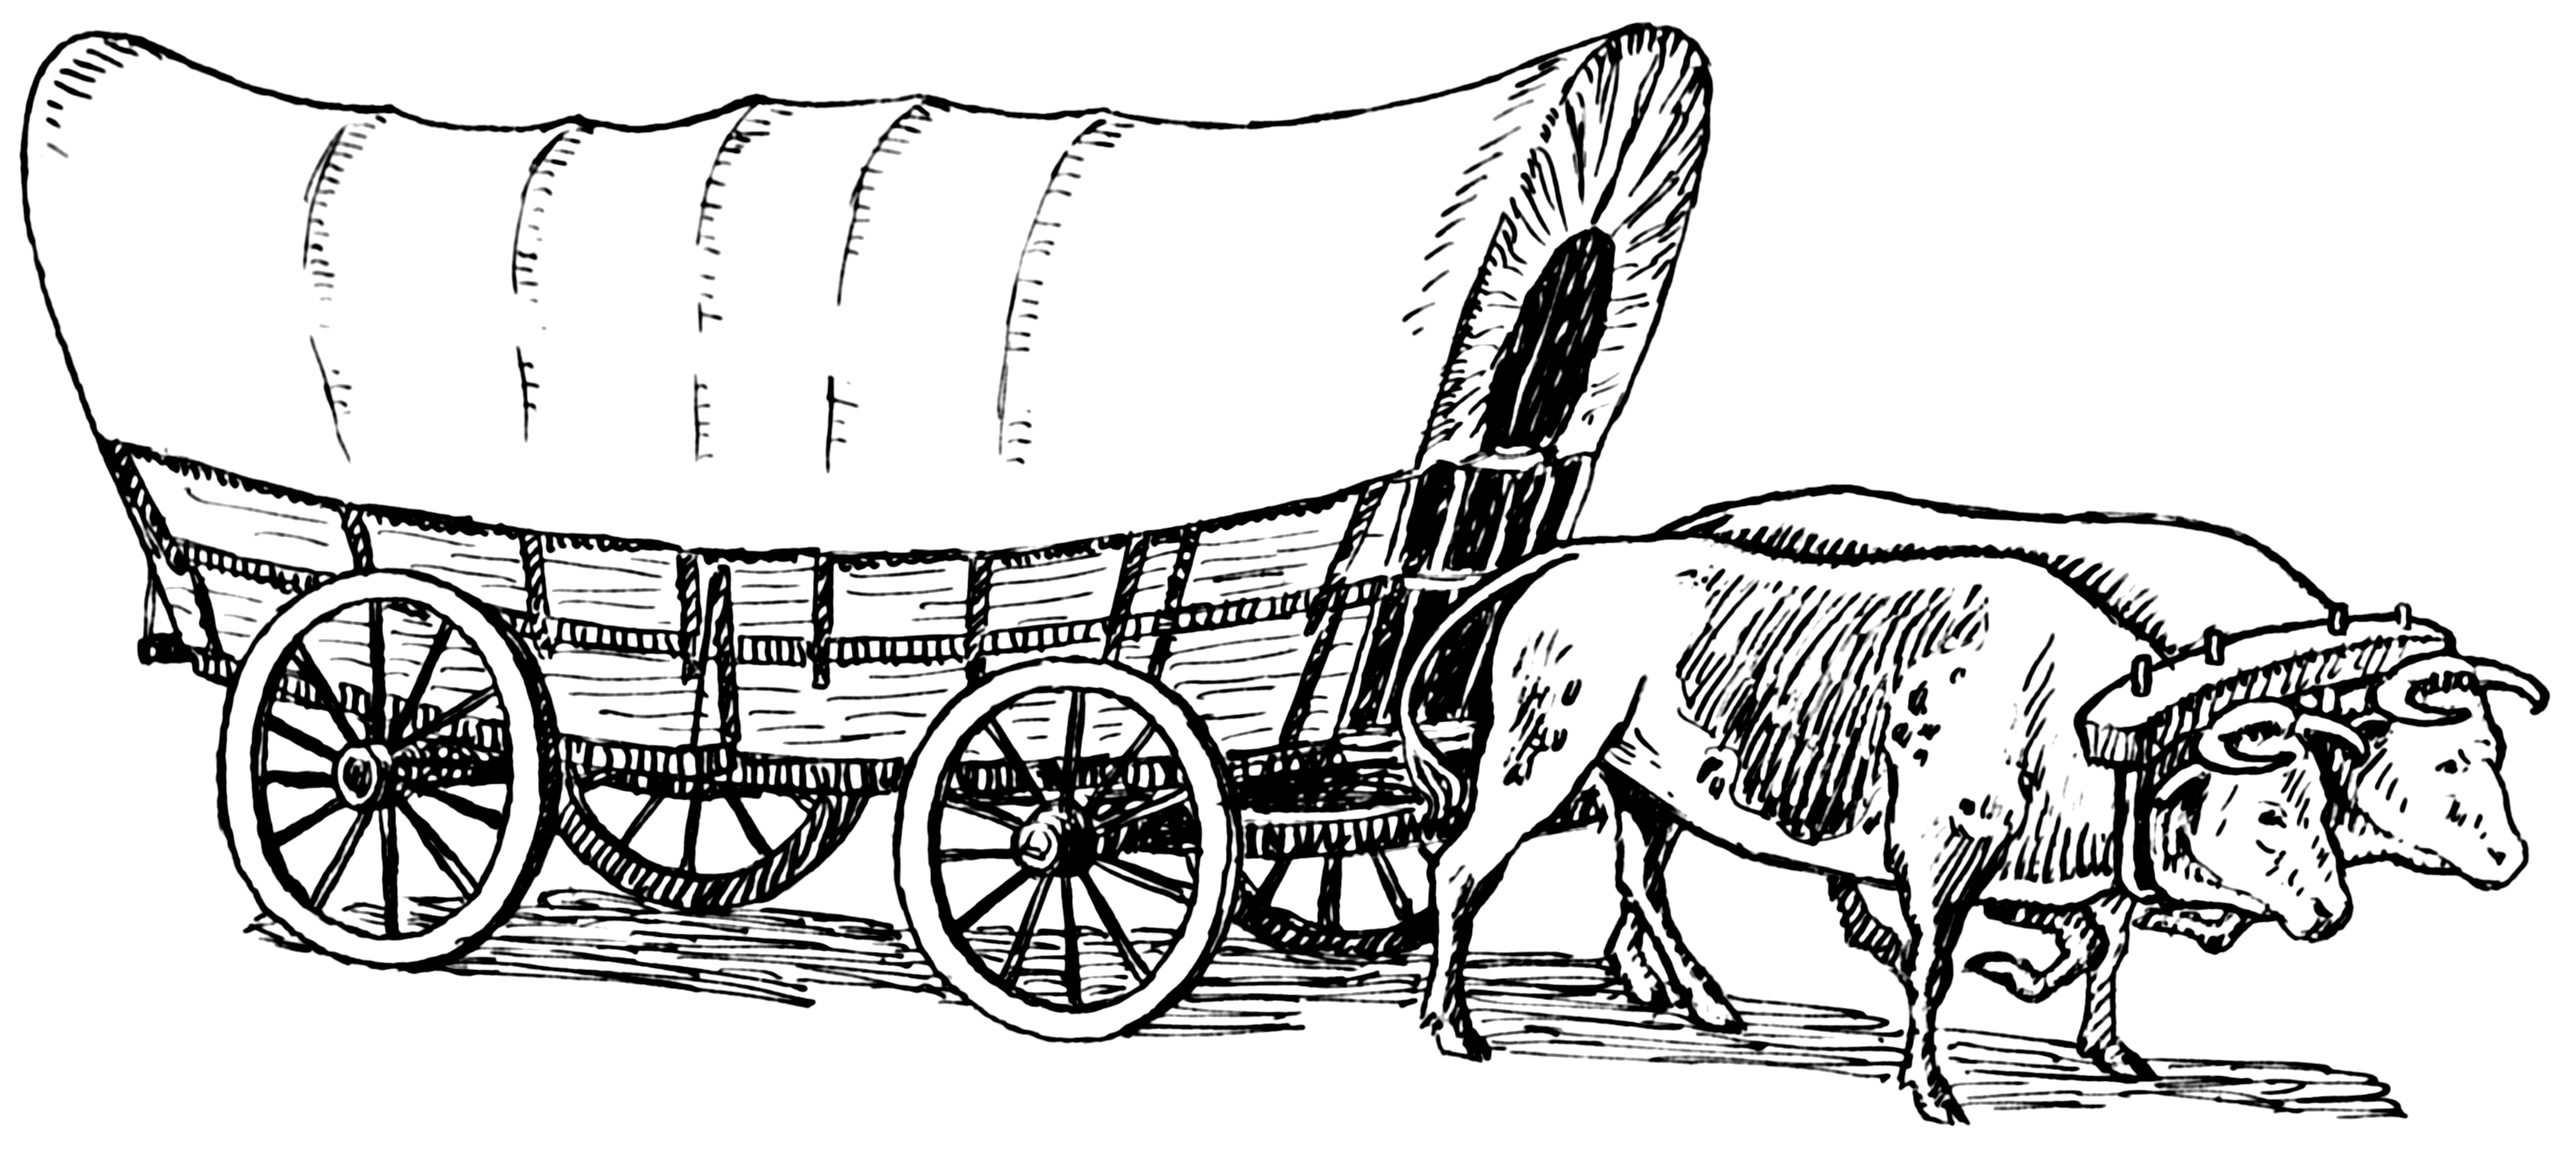 Covered wagon coloring pages for kids ~ Covered Wagon on Pinterest   Covered Wagon, Oregon Trail ...